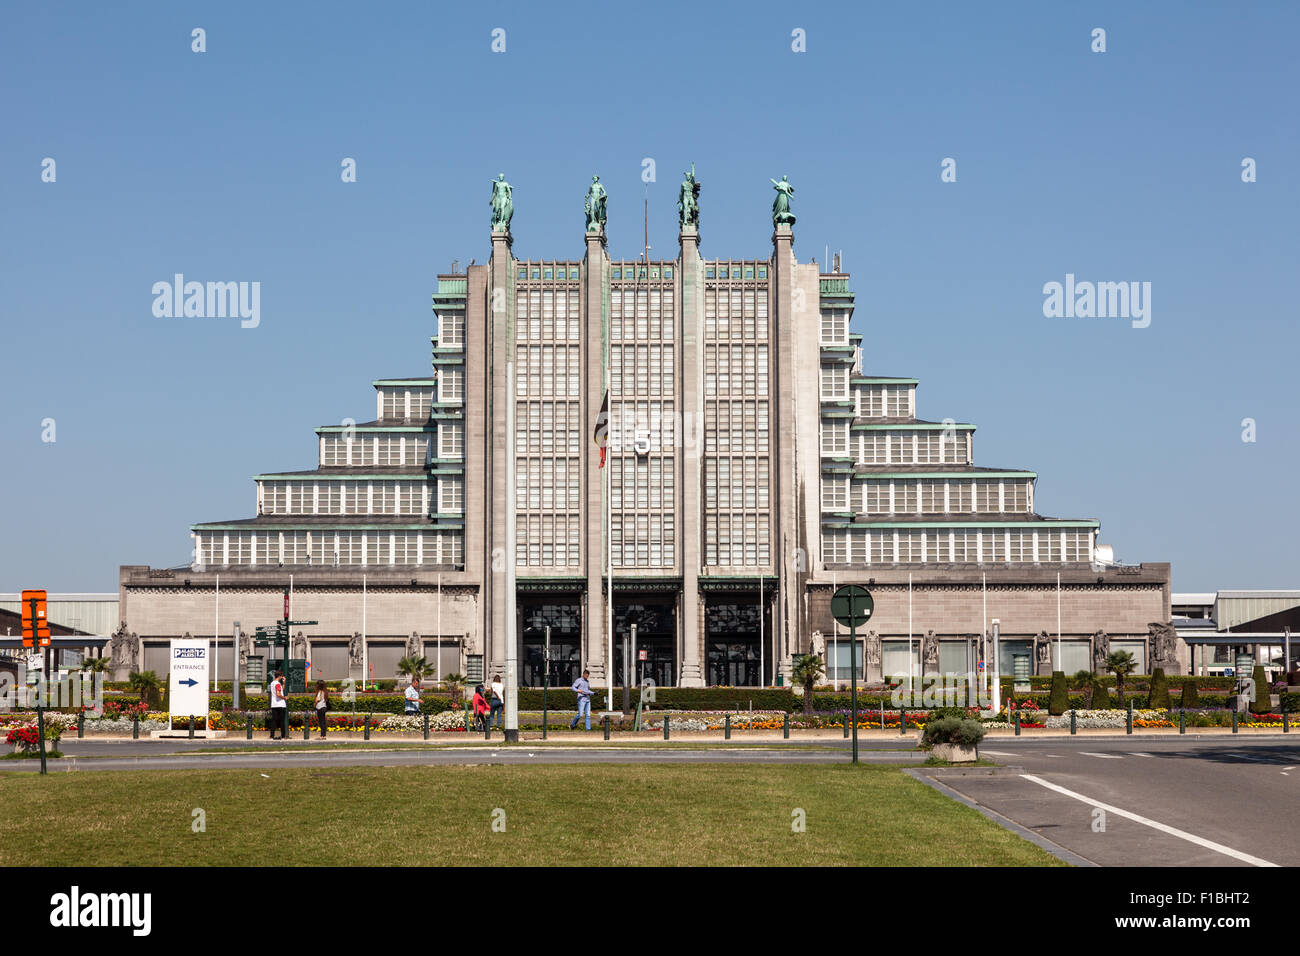 Building at the World Fair in Brussels, Belgium - Stock Image